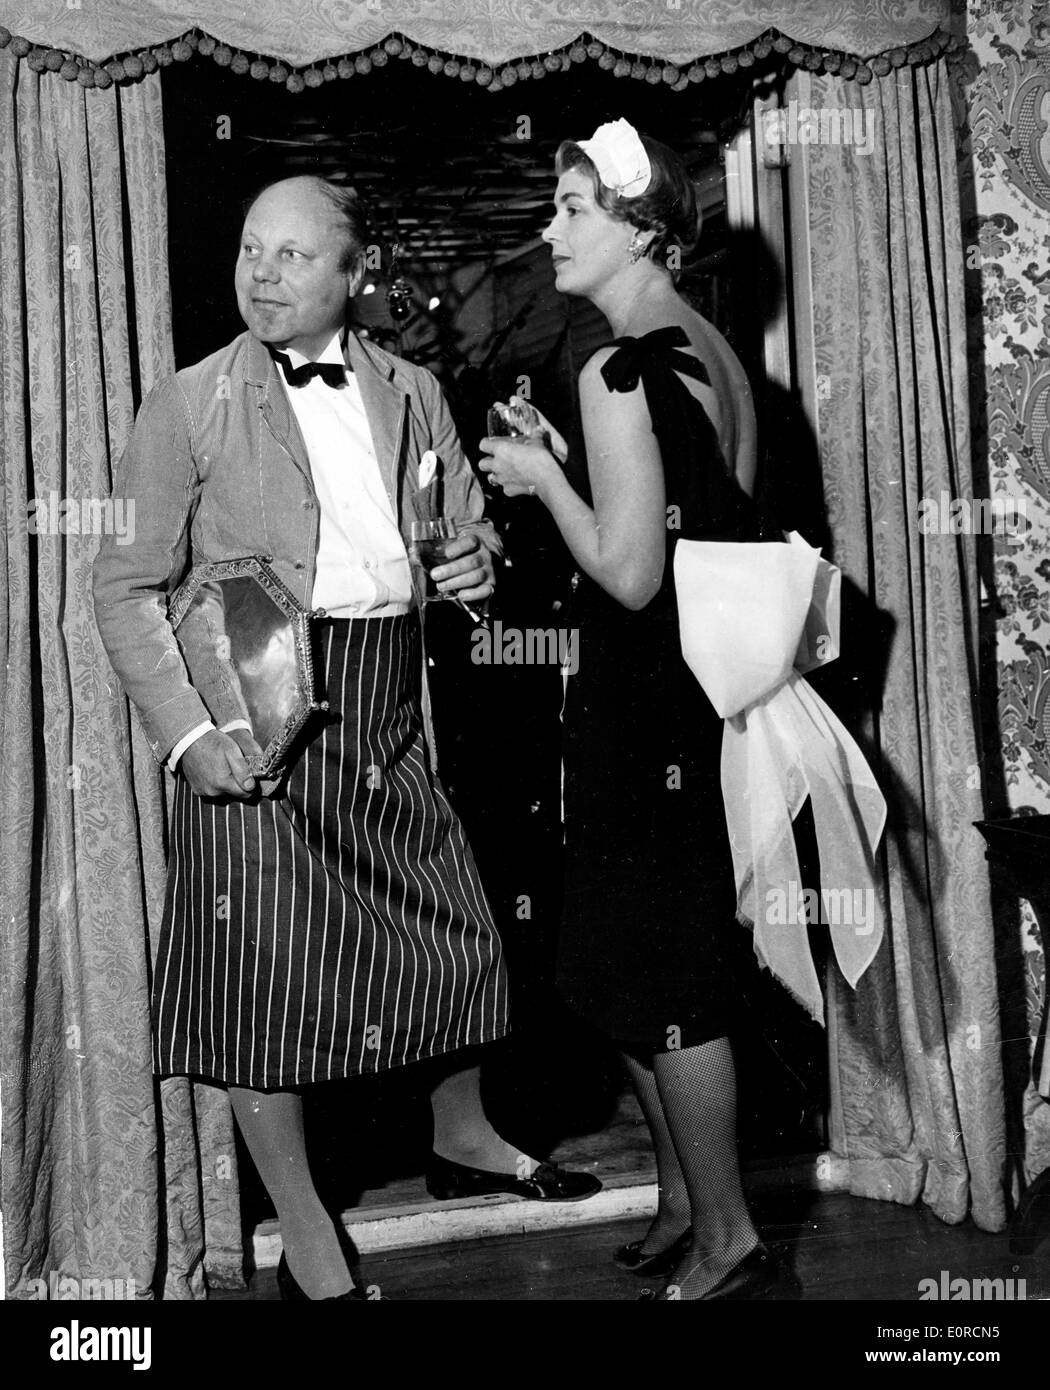 Jan 07, 1959; London, UK; JOHN SPENCER CHURCHILL and his wife as footman and maid arrive for the Mayfair Twelfth Night Party. - Stock Image